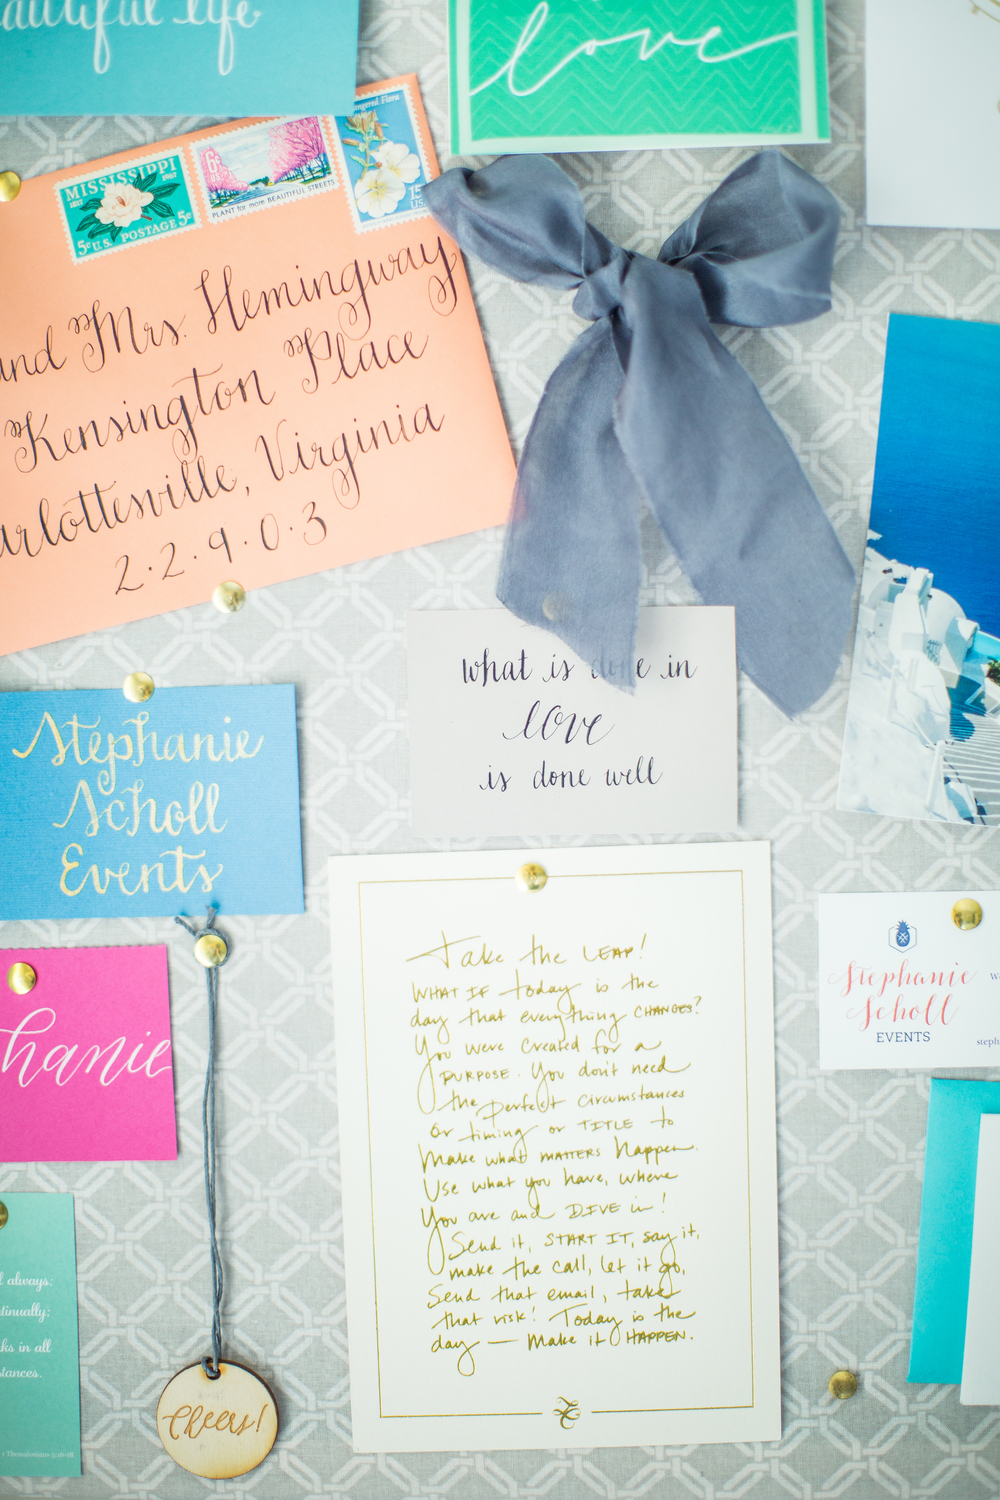 Calligraphy inspiration | Bulletin board inspiration | Creative offices | The School of Styling - theschoolofstyling.com